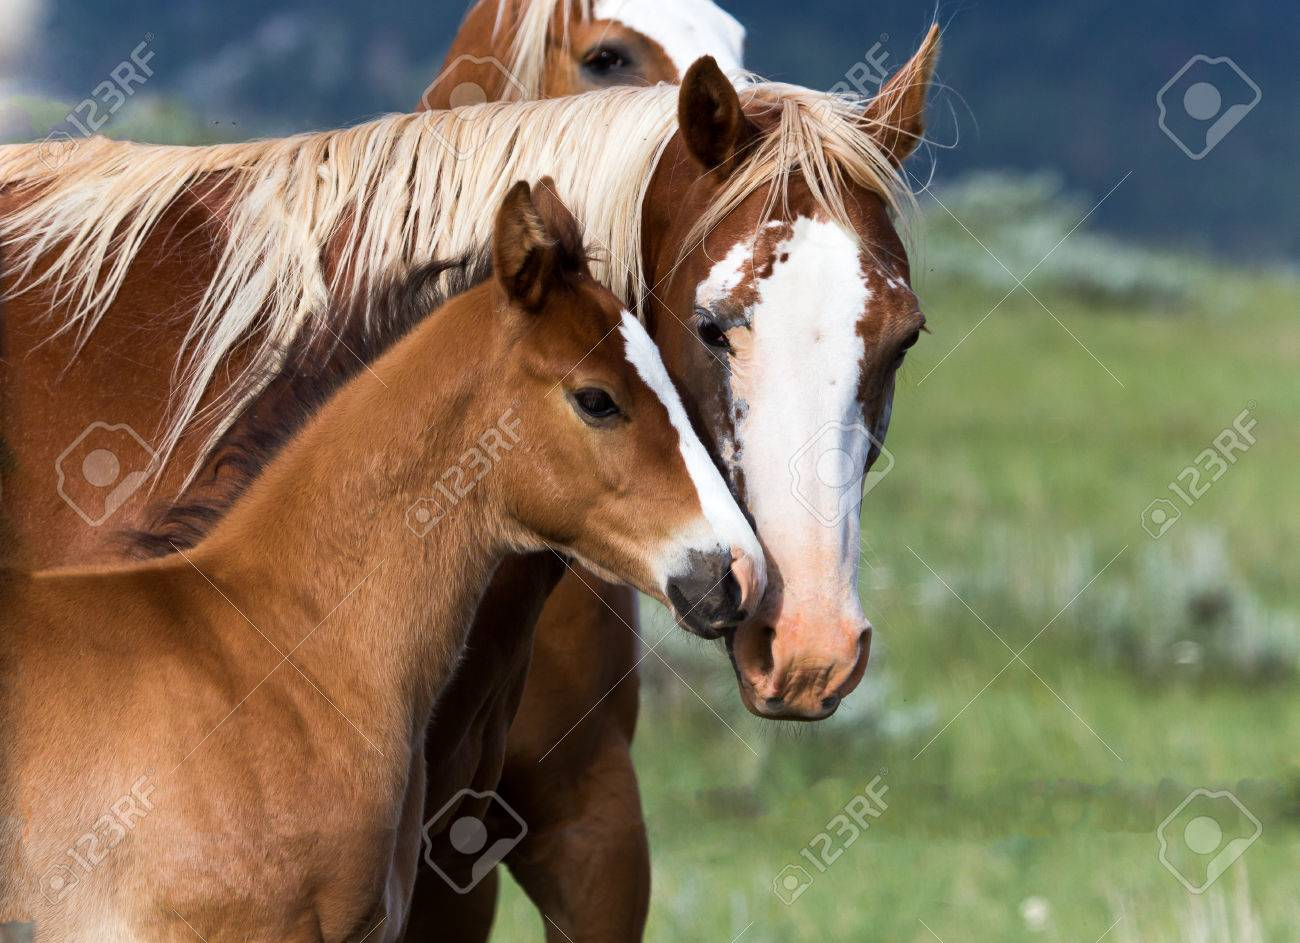 Mother And Baby Horse Stock Photo Picture And Royalty Free Image Image 24814658